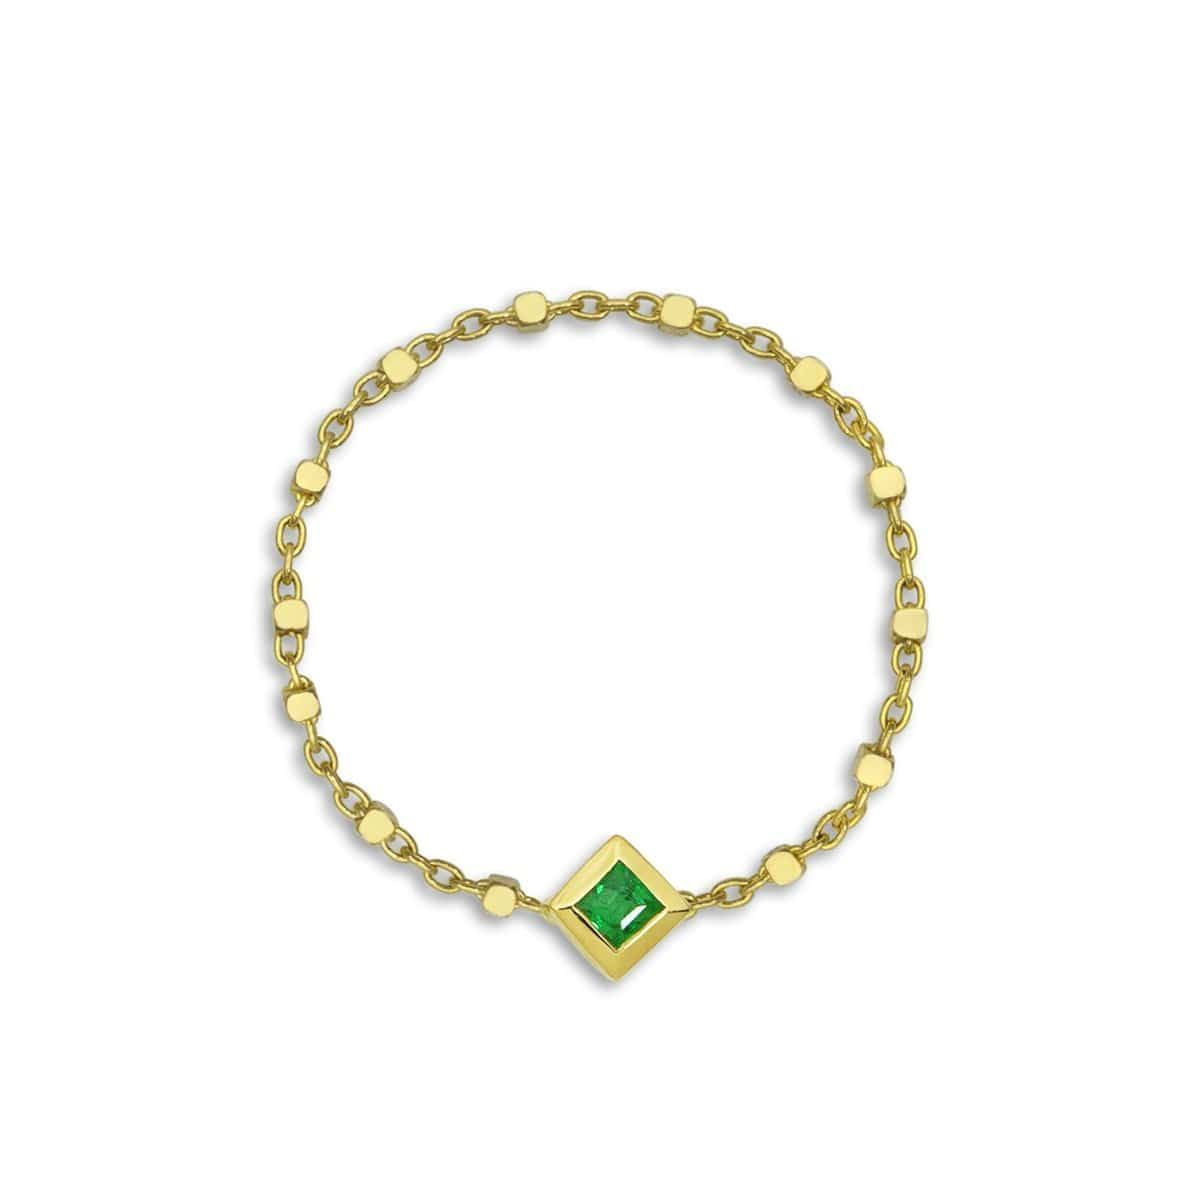 Princess Cut Emerald Chain Ring